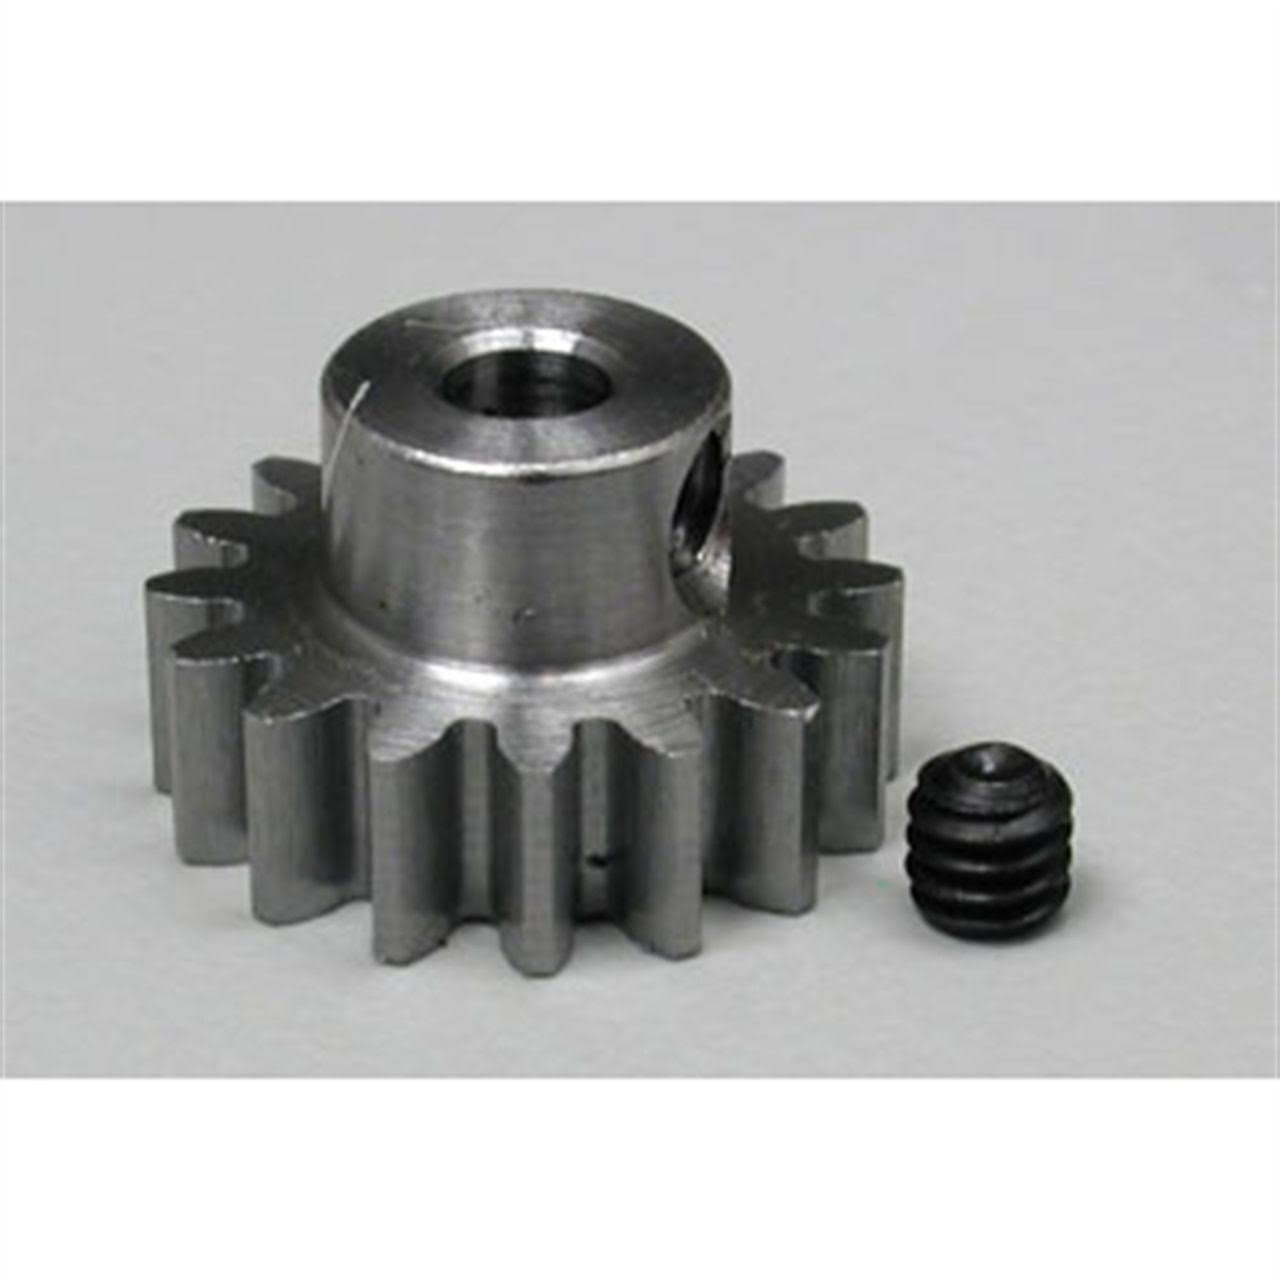 Robinson Racing 32 Pitch Pinion Gear - 16T